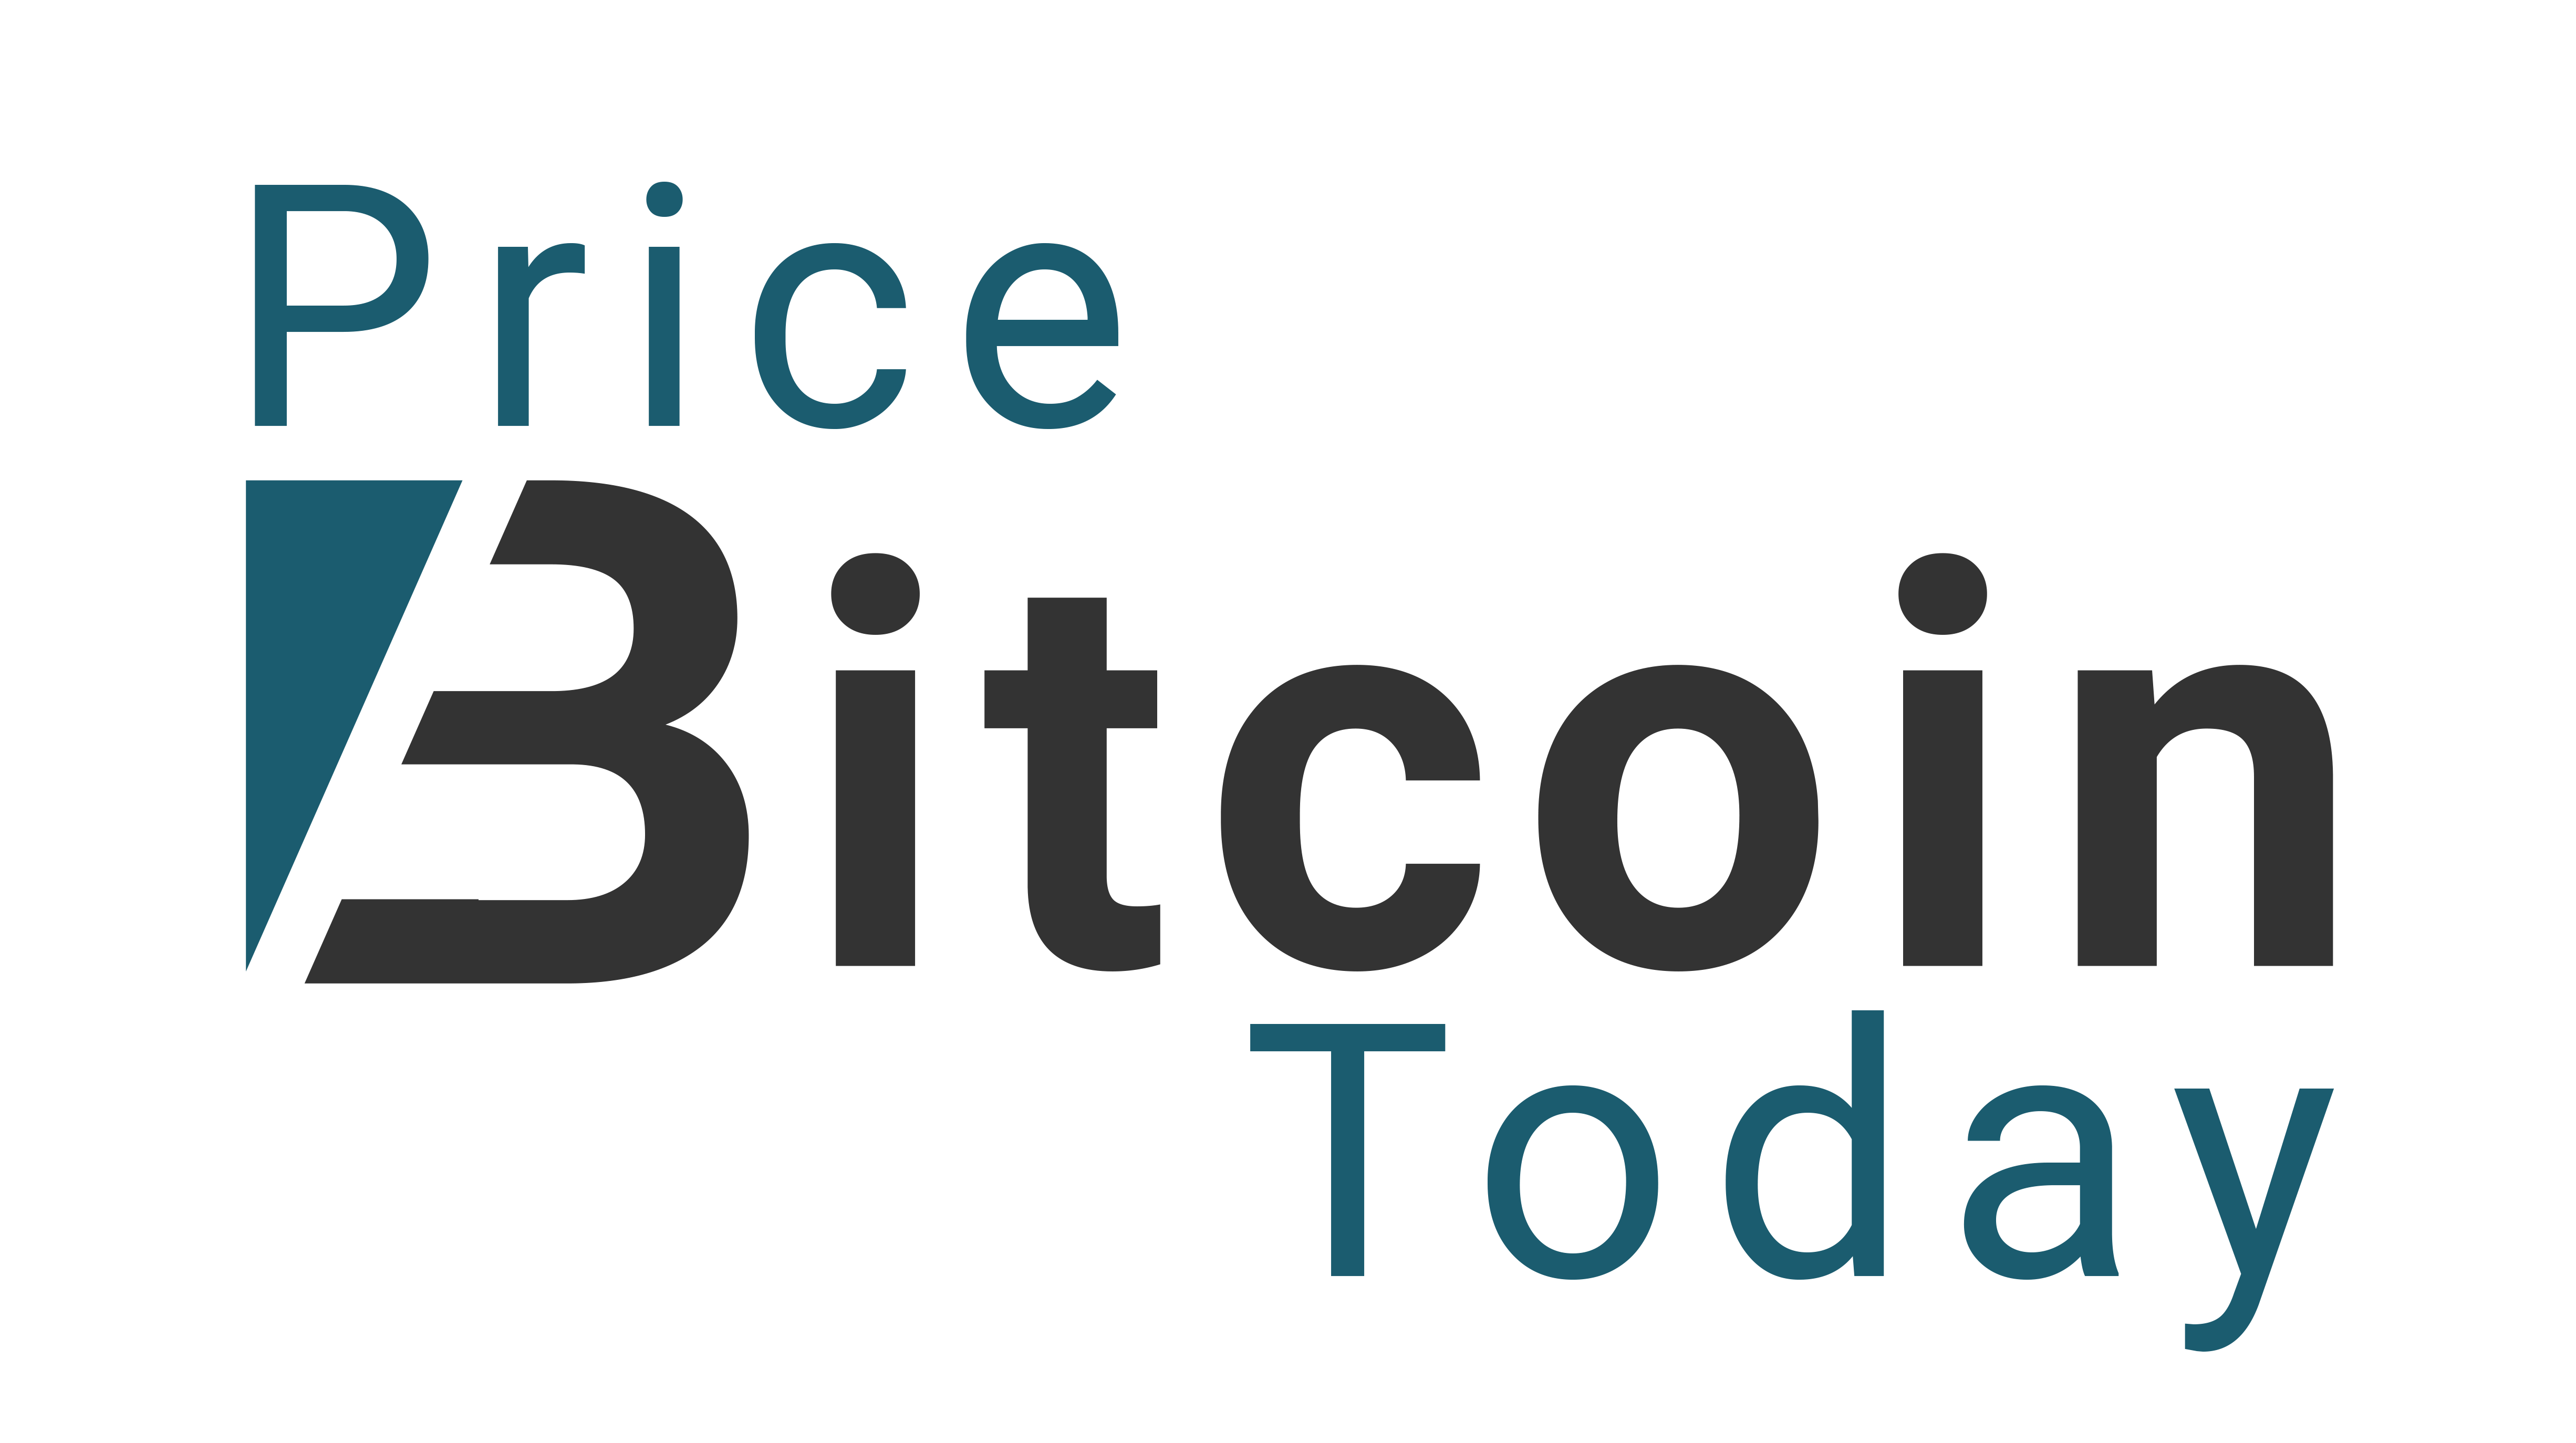 Price Bitcoin Today logo